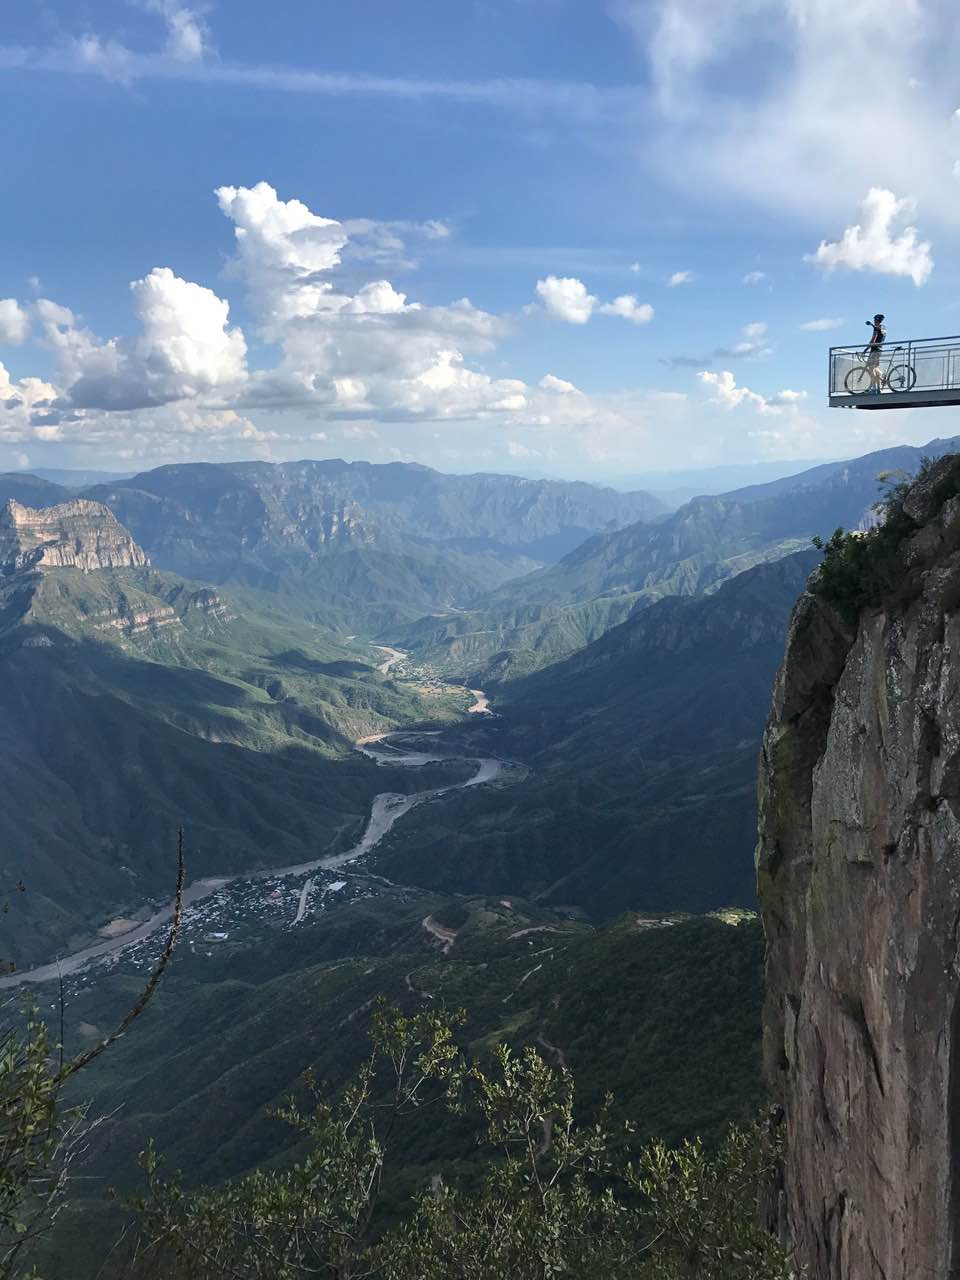 Types Of Bicycles >> Bikerumor Pic Of The Day: Chihuahua, Mexico - Bikerumor